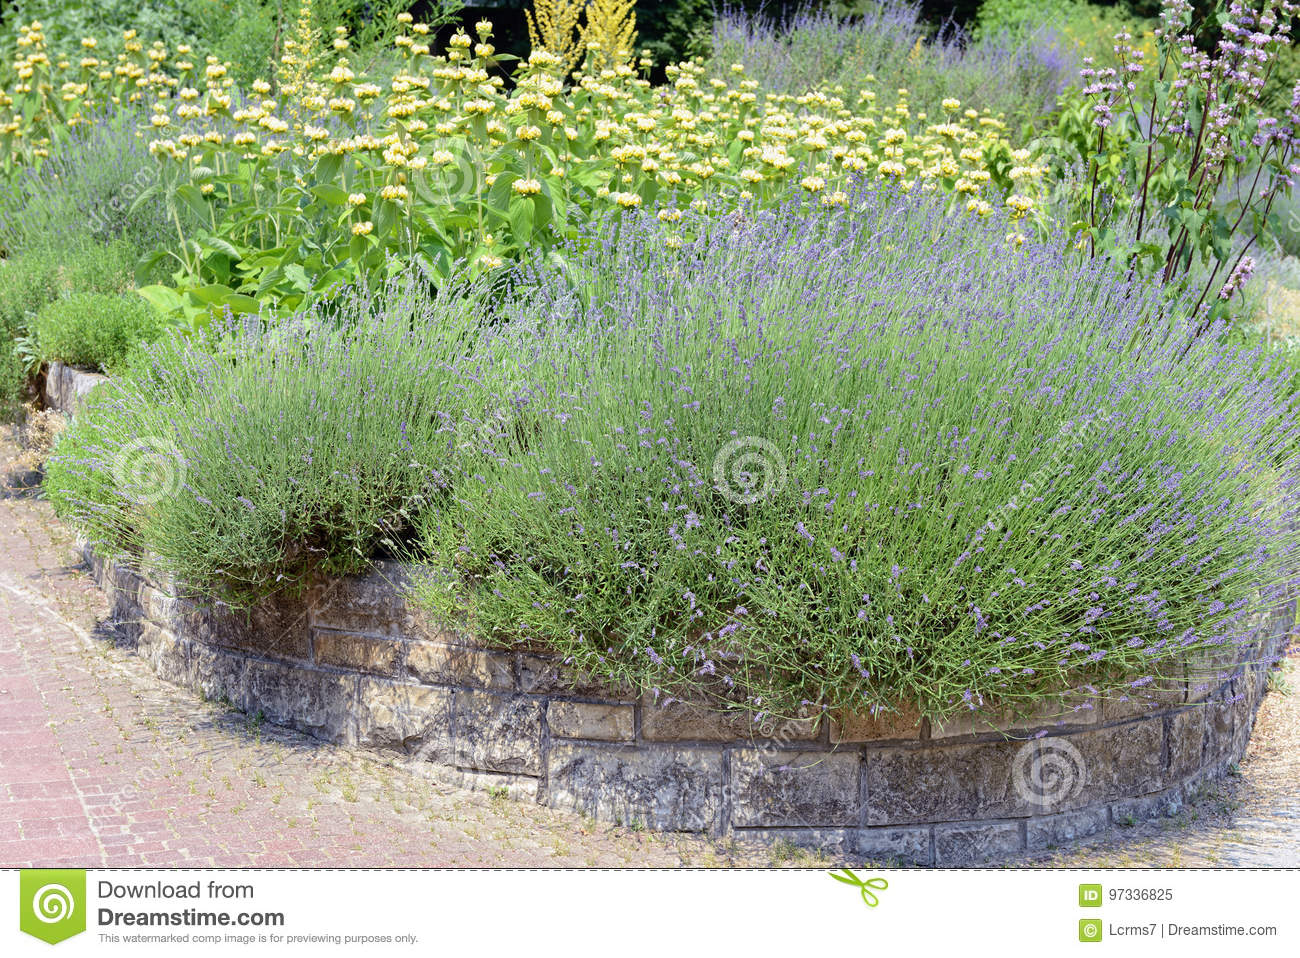 Garden with Lavender Lavandula angustifolia and Lampwick Plant